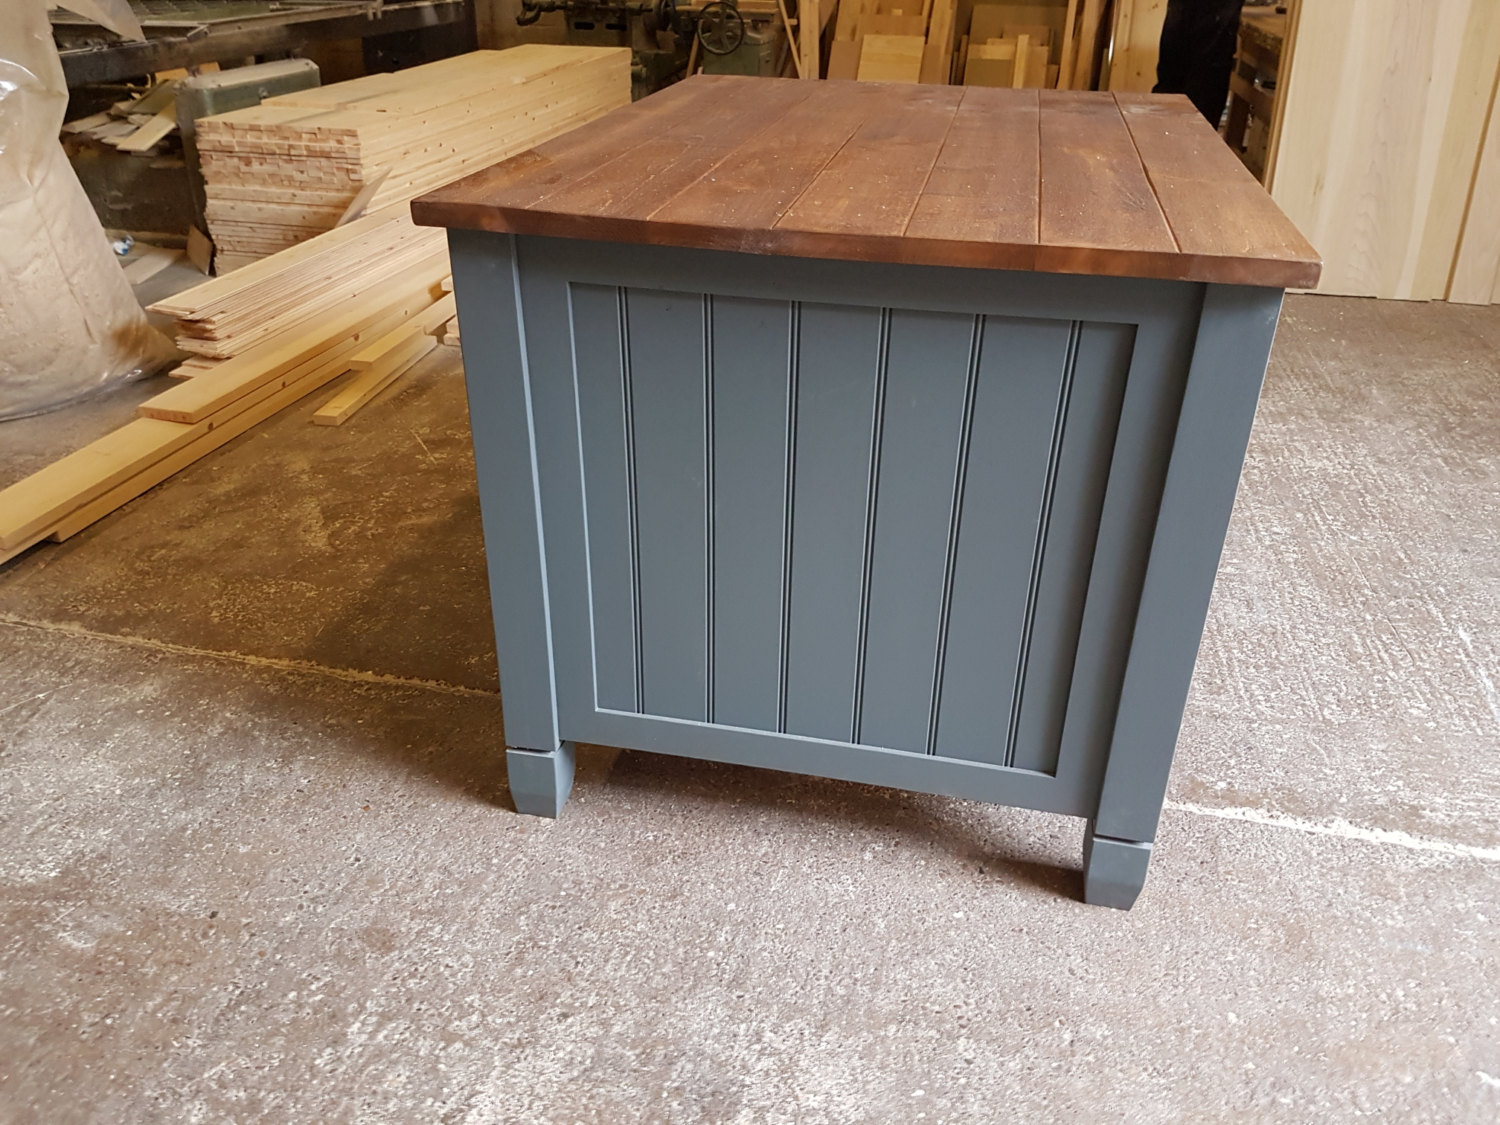 Tom Marsh Handmade Bespoke Kitchen Islands Any Design Or